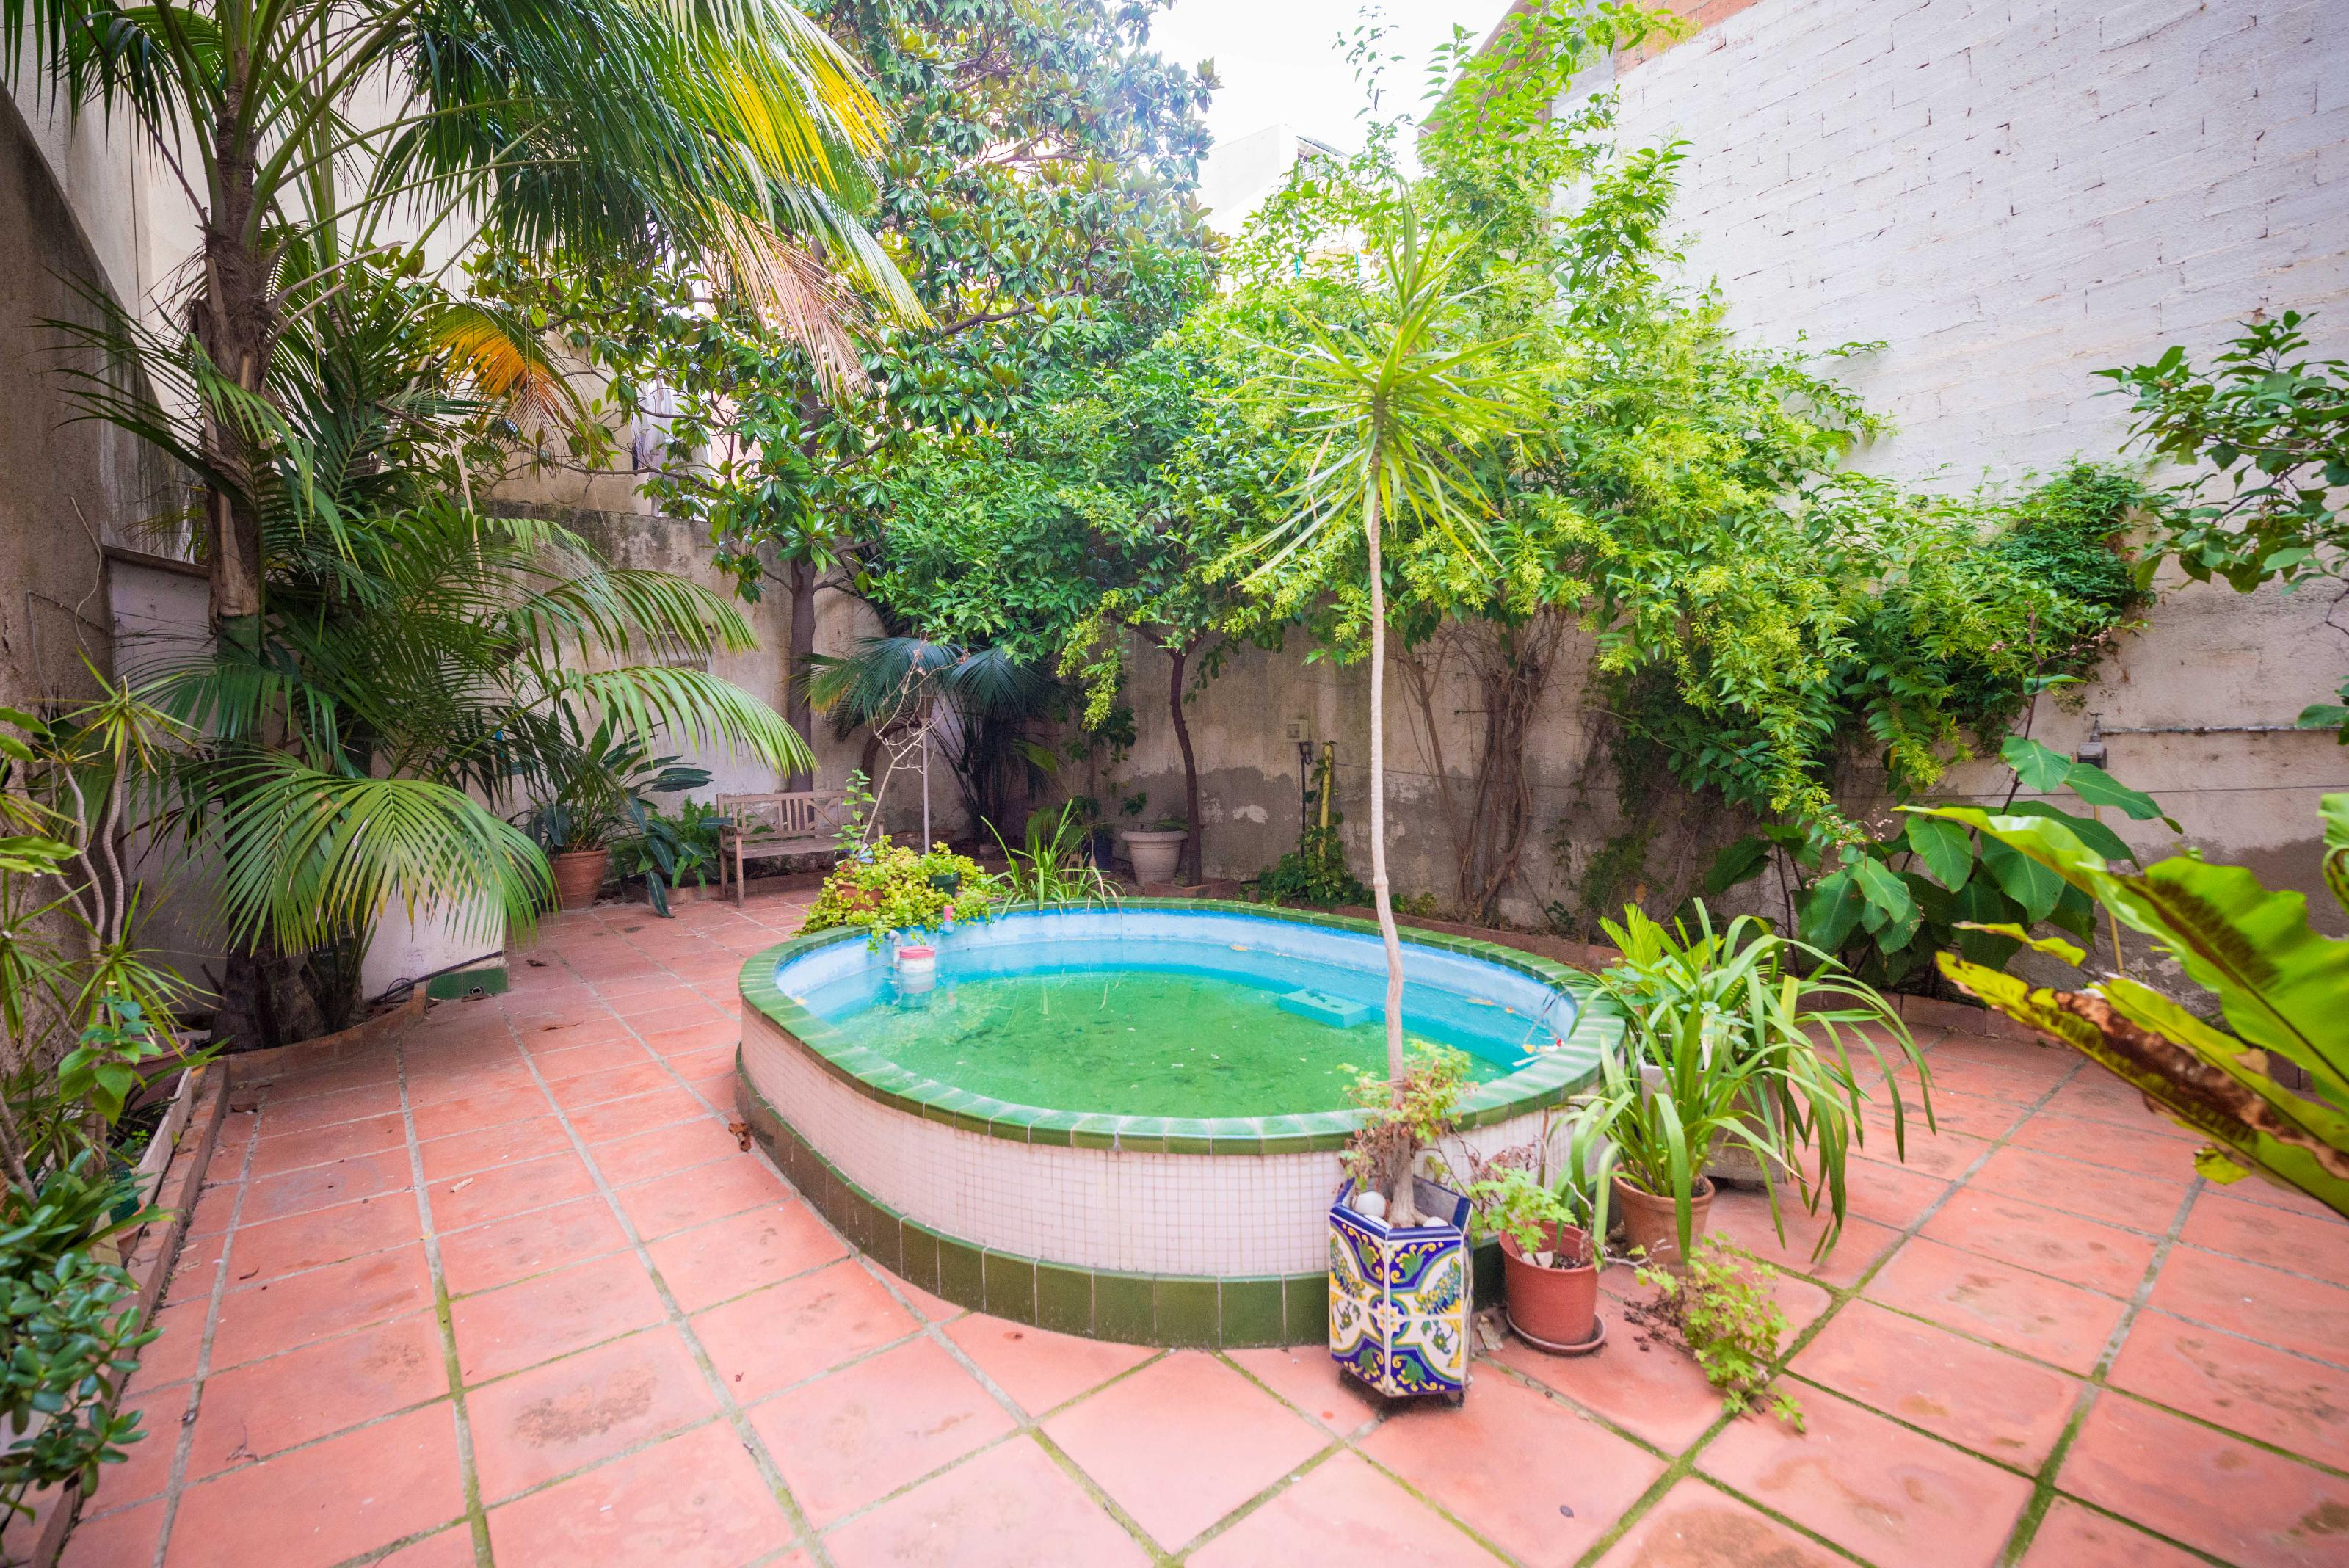 239881 Semi-detached house for sale in Gràcia, Camp Grassot and Gràcia Nova 13